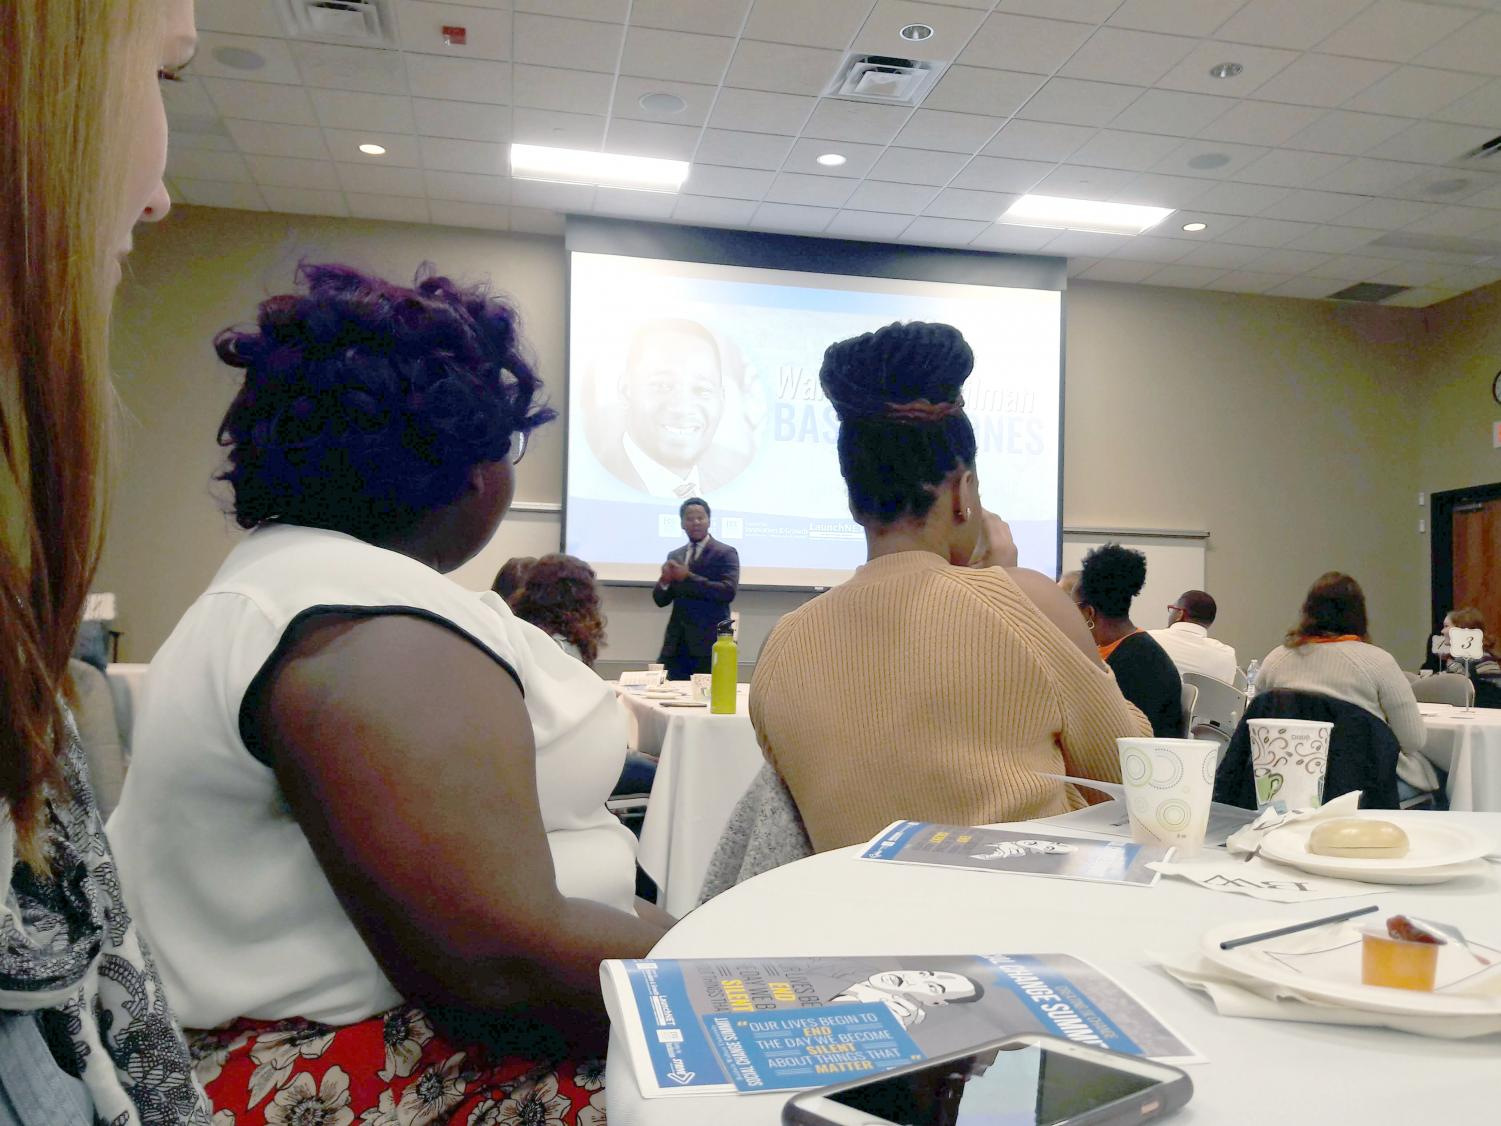 The Social Change Summit takes place in the CIG and attracted about 100 attendees this year.